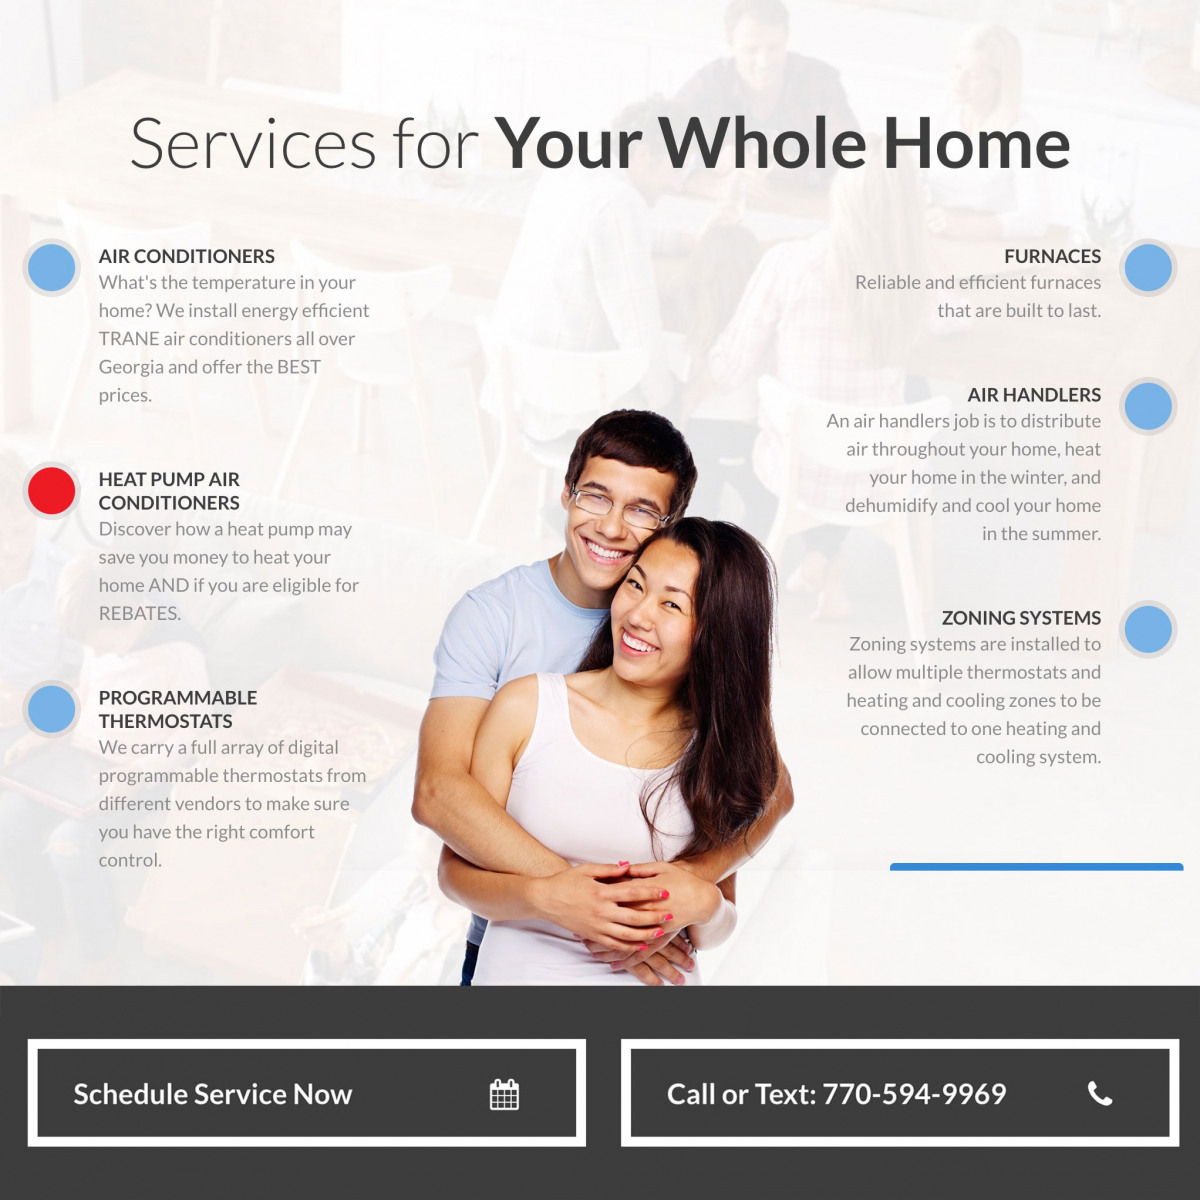 Image of website for Reliable Heating & Air